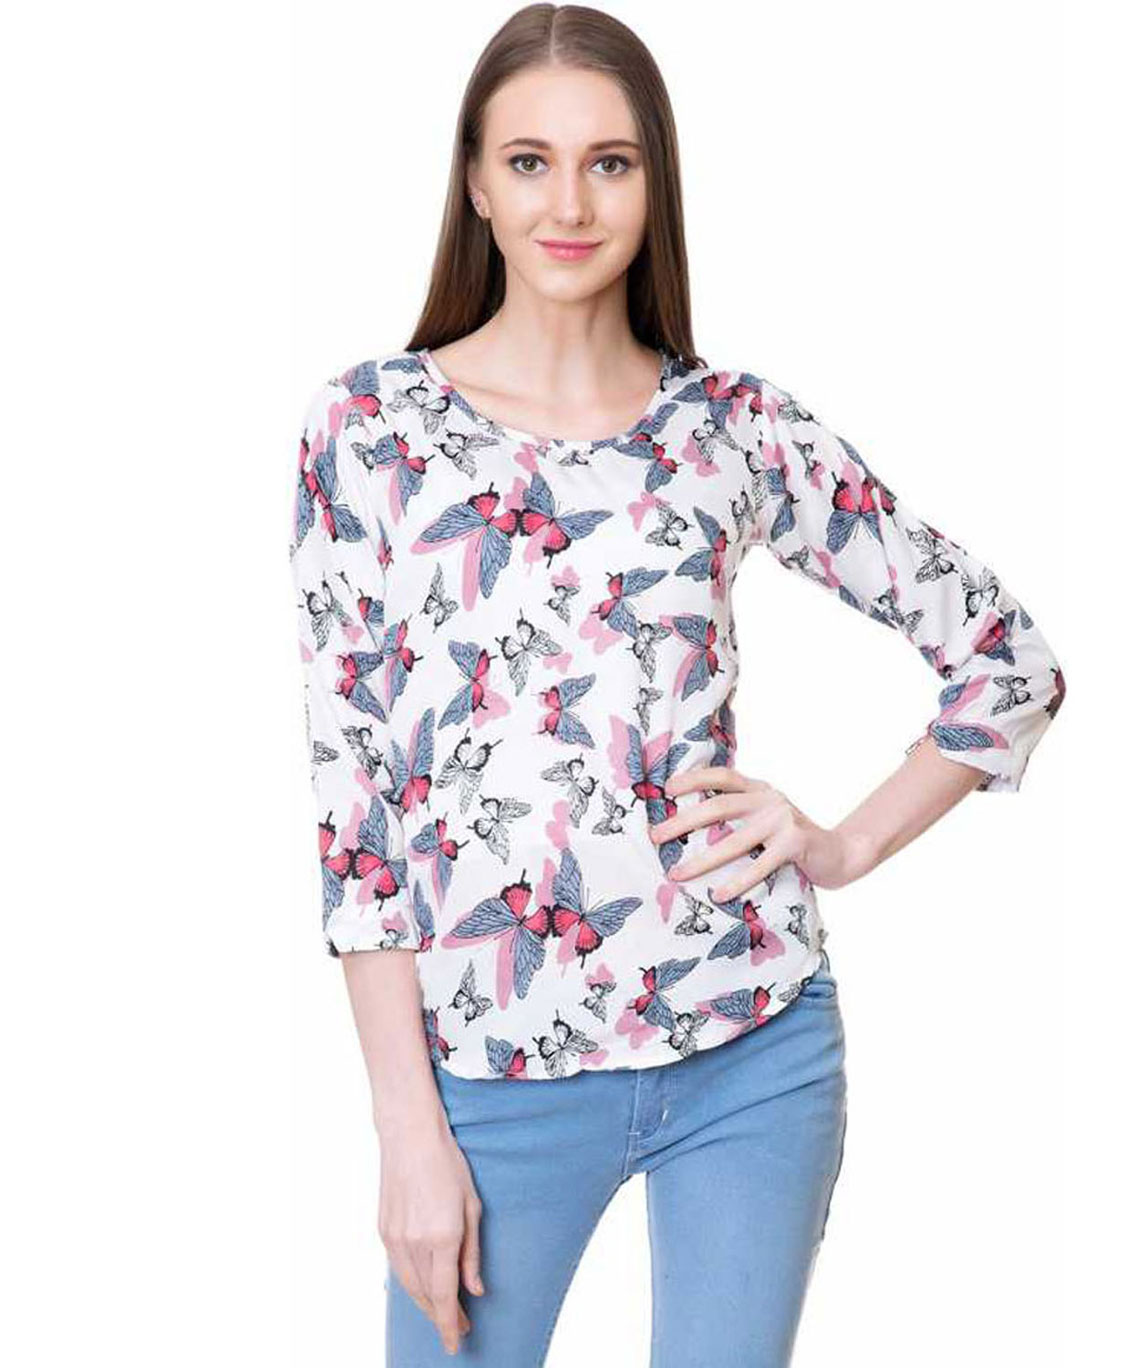 CASUAL 3/4 SLEEVE ANIMAL PRINT WOMEN WHITE, PINK, GREY, MULTICOLOR TOP